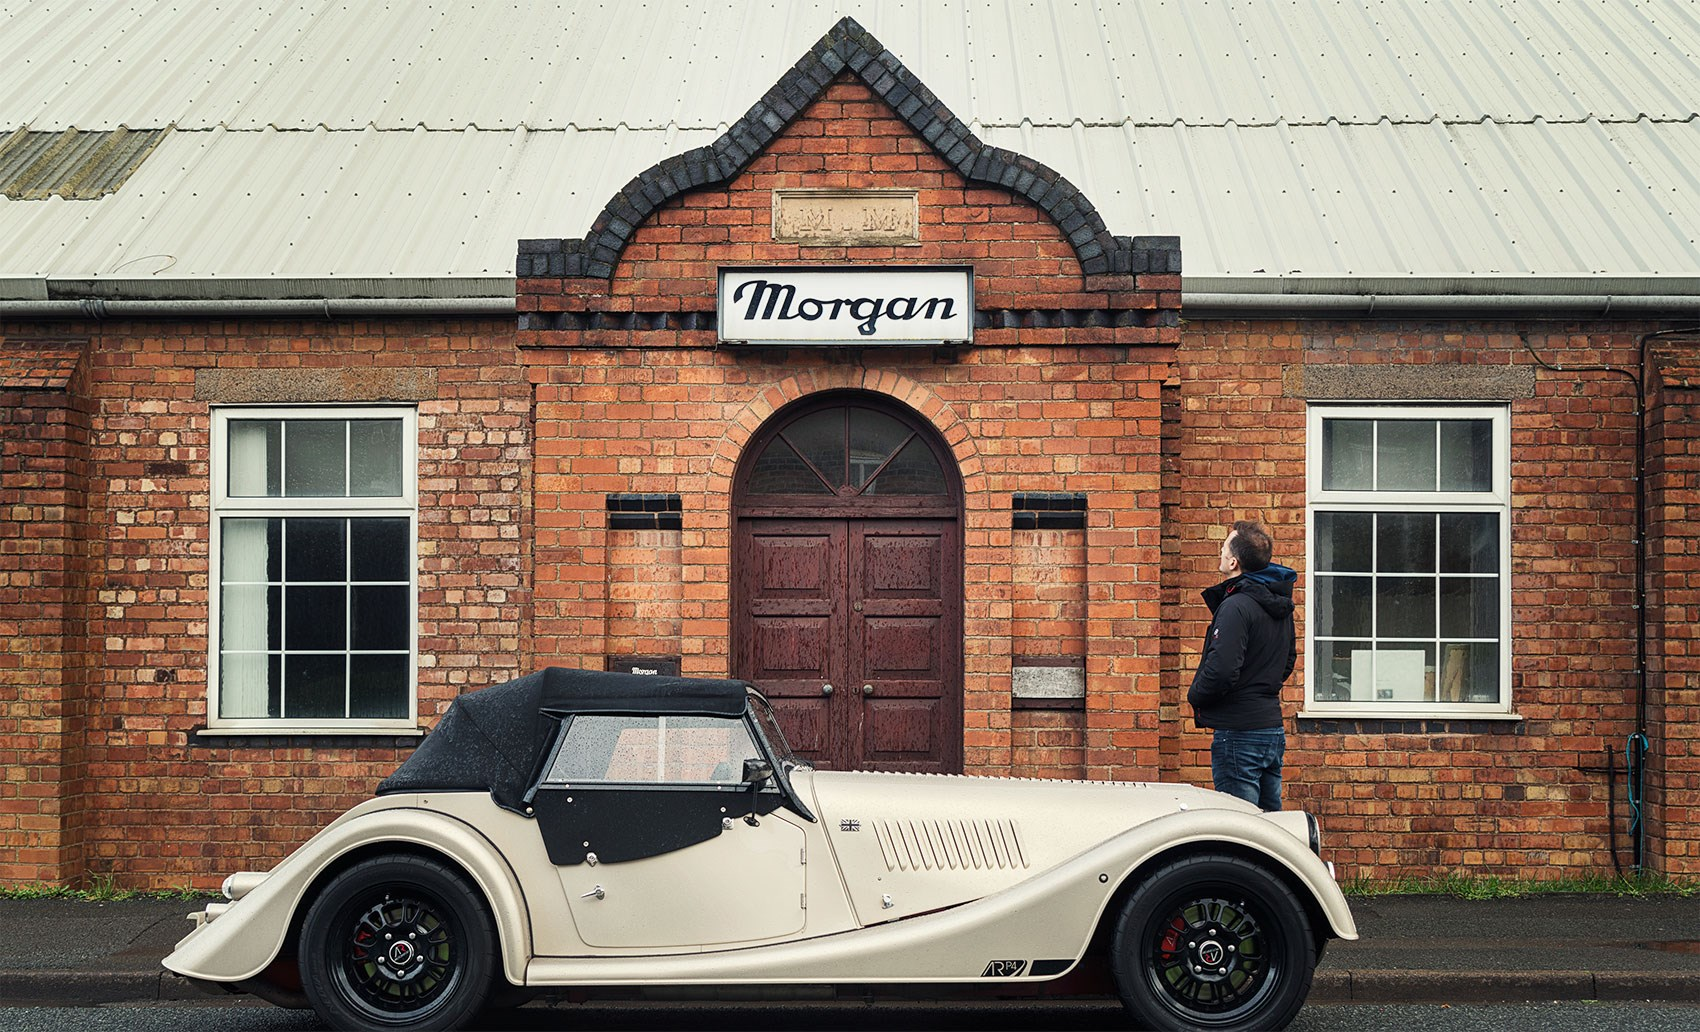 Inside Morgan The Latest From The Manufacturer That Time Forgot